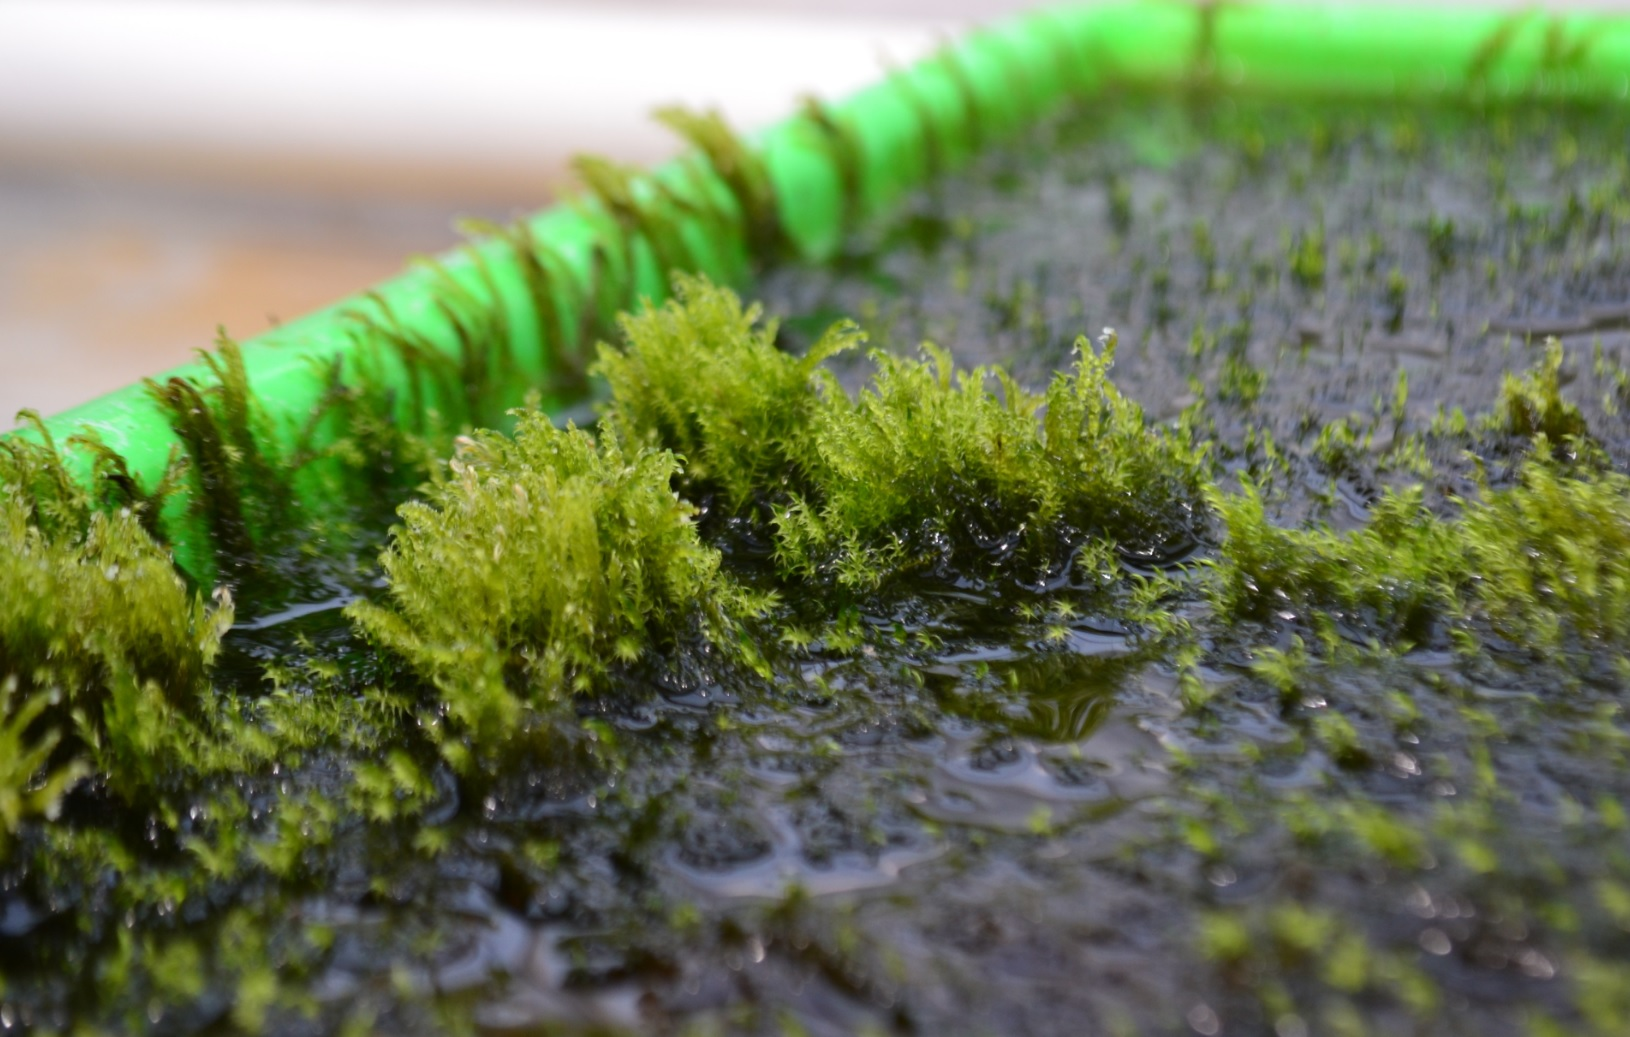 Researchers at Stockholm University have discovered a type of moss that can eliminate arsenic from water.